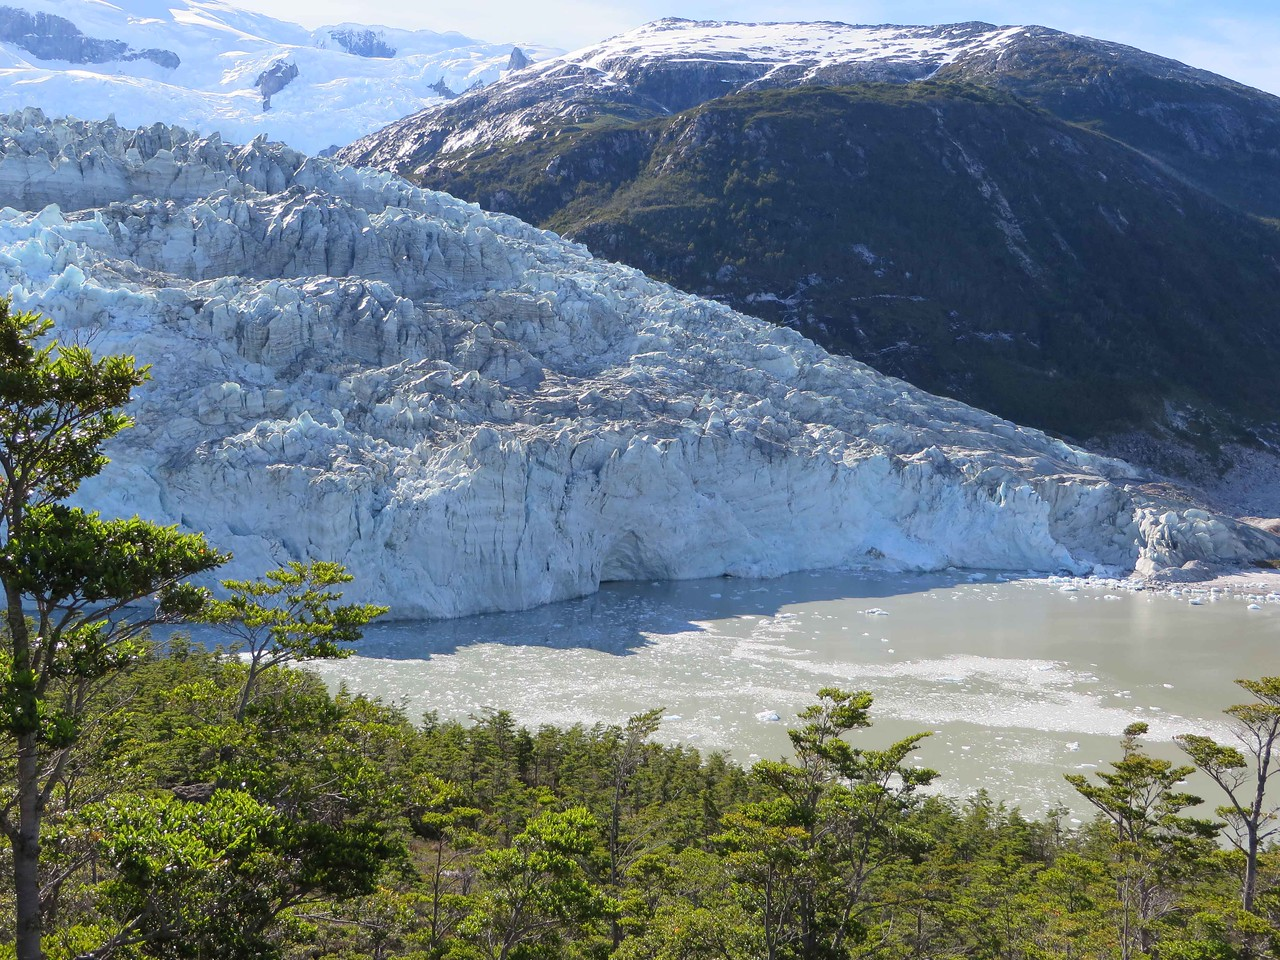 View of the Pia Glacier from up high.